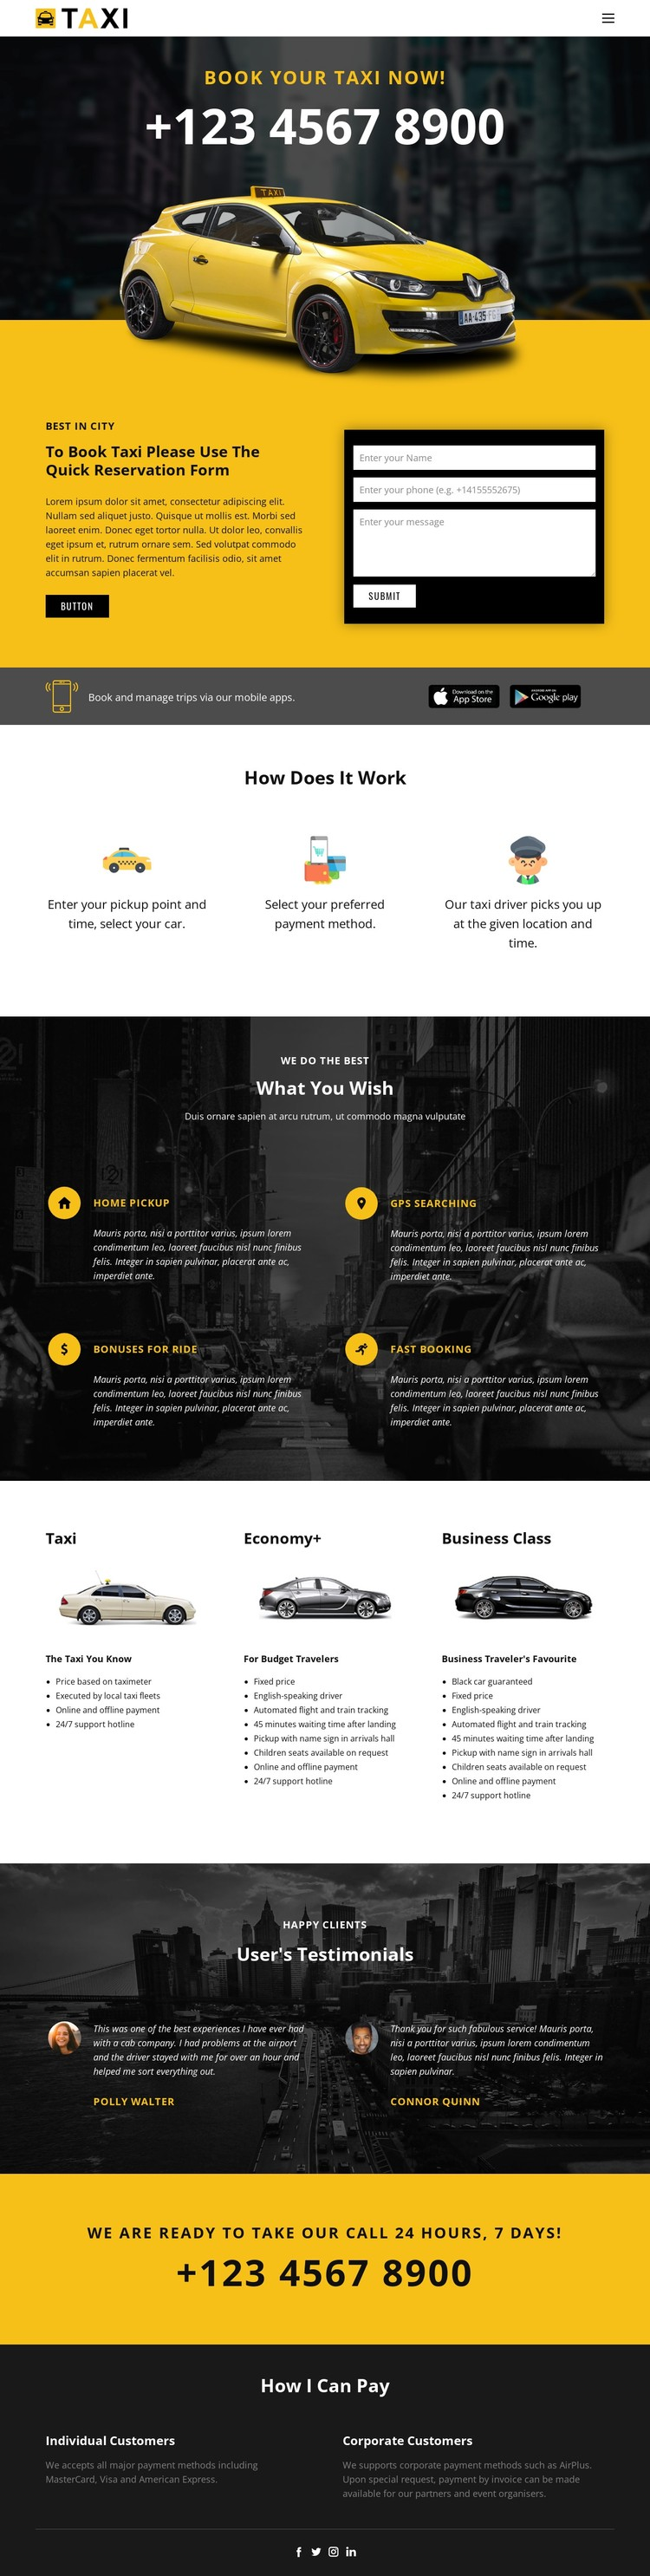 Fastest taxi cars Static Site Generator